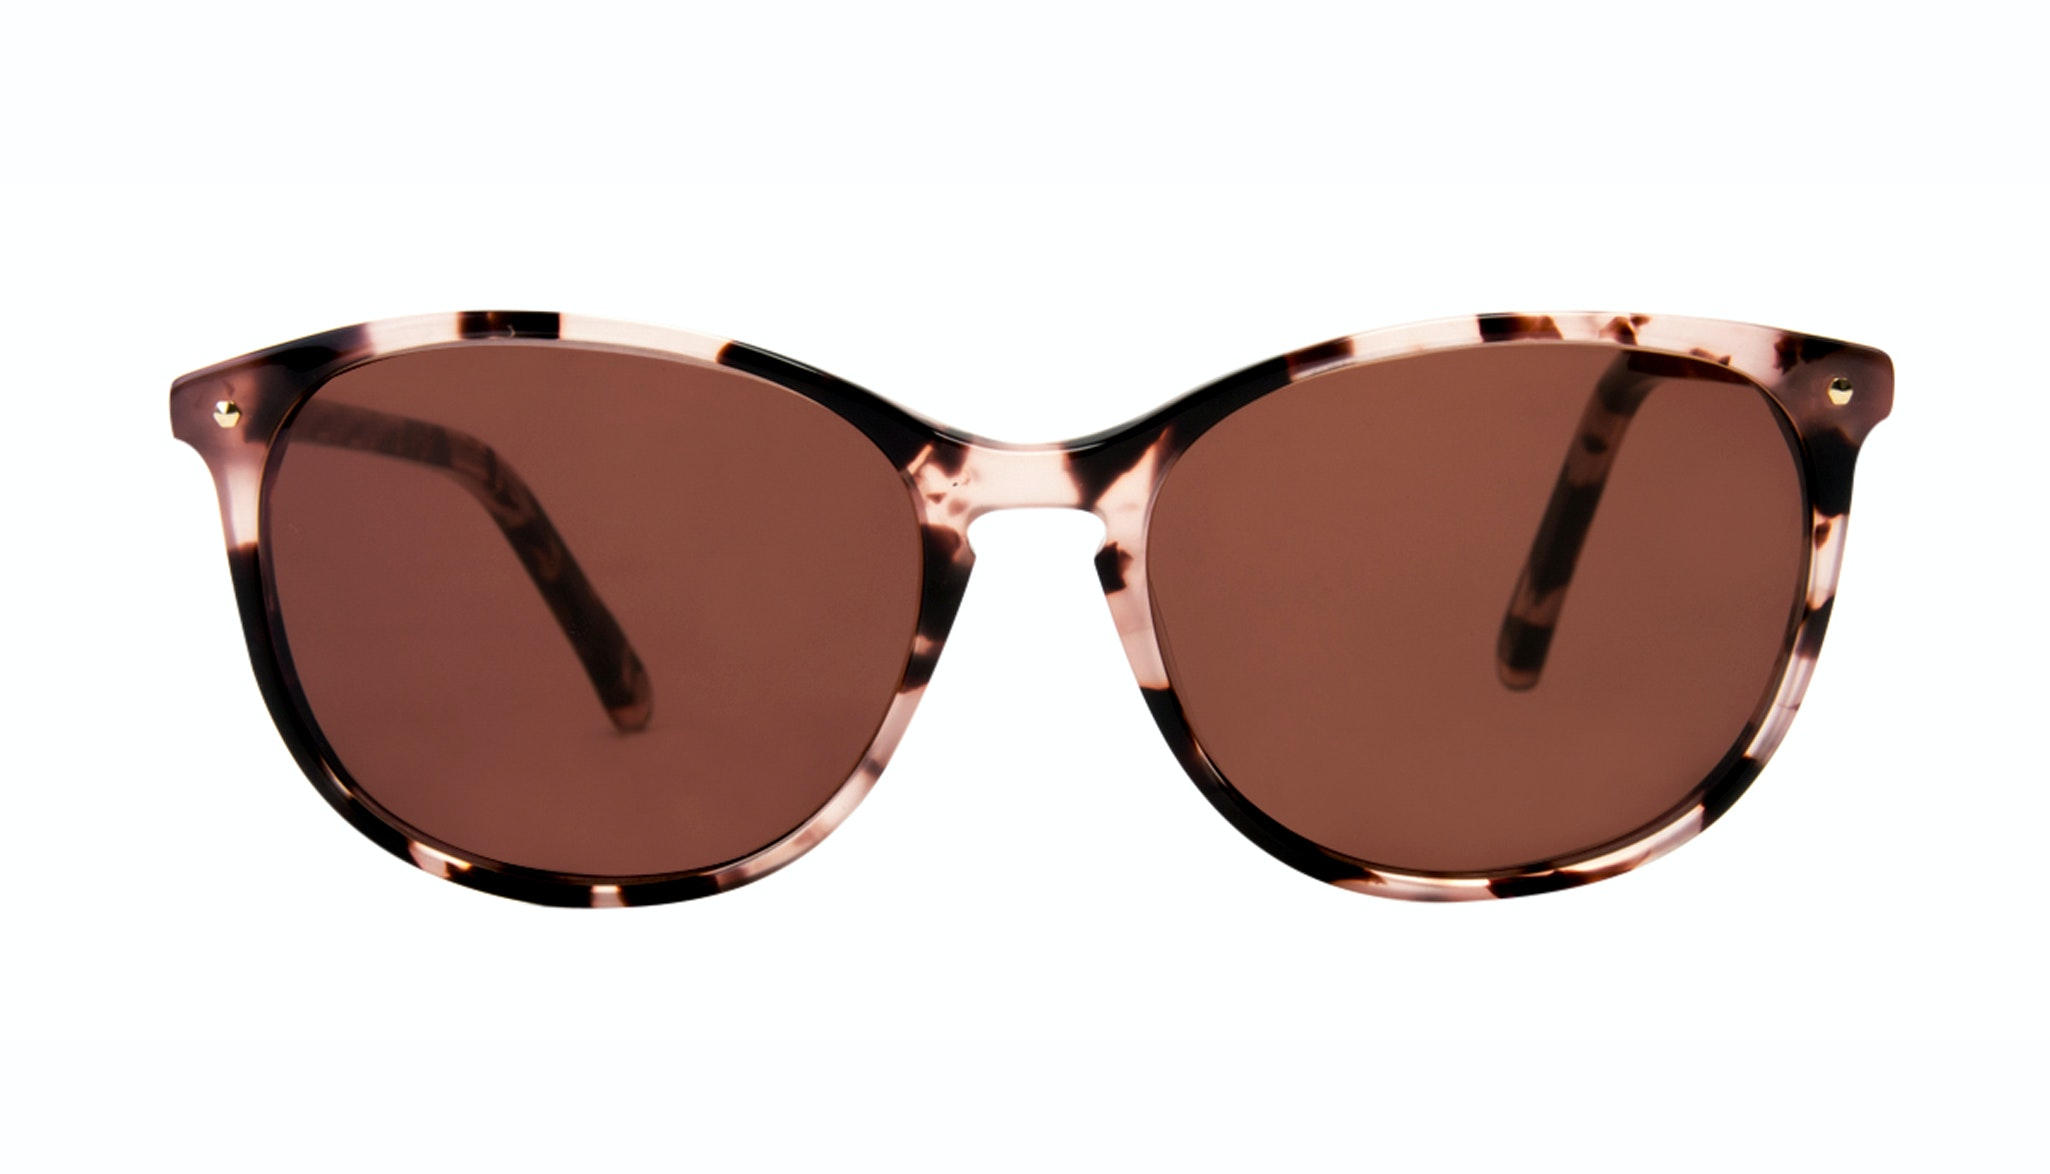 Affordable Fashion Glasses Rectangle Square Round Sunglasses Women Nadine Pink Tortoise Front